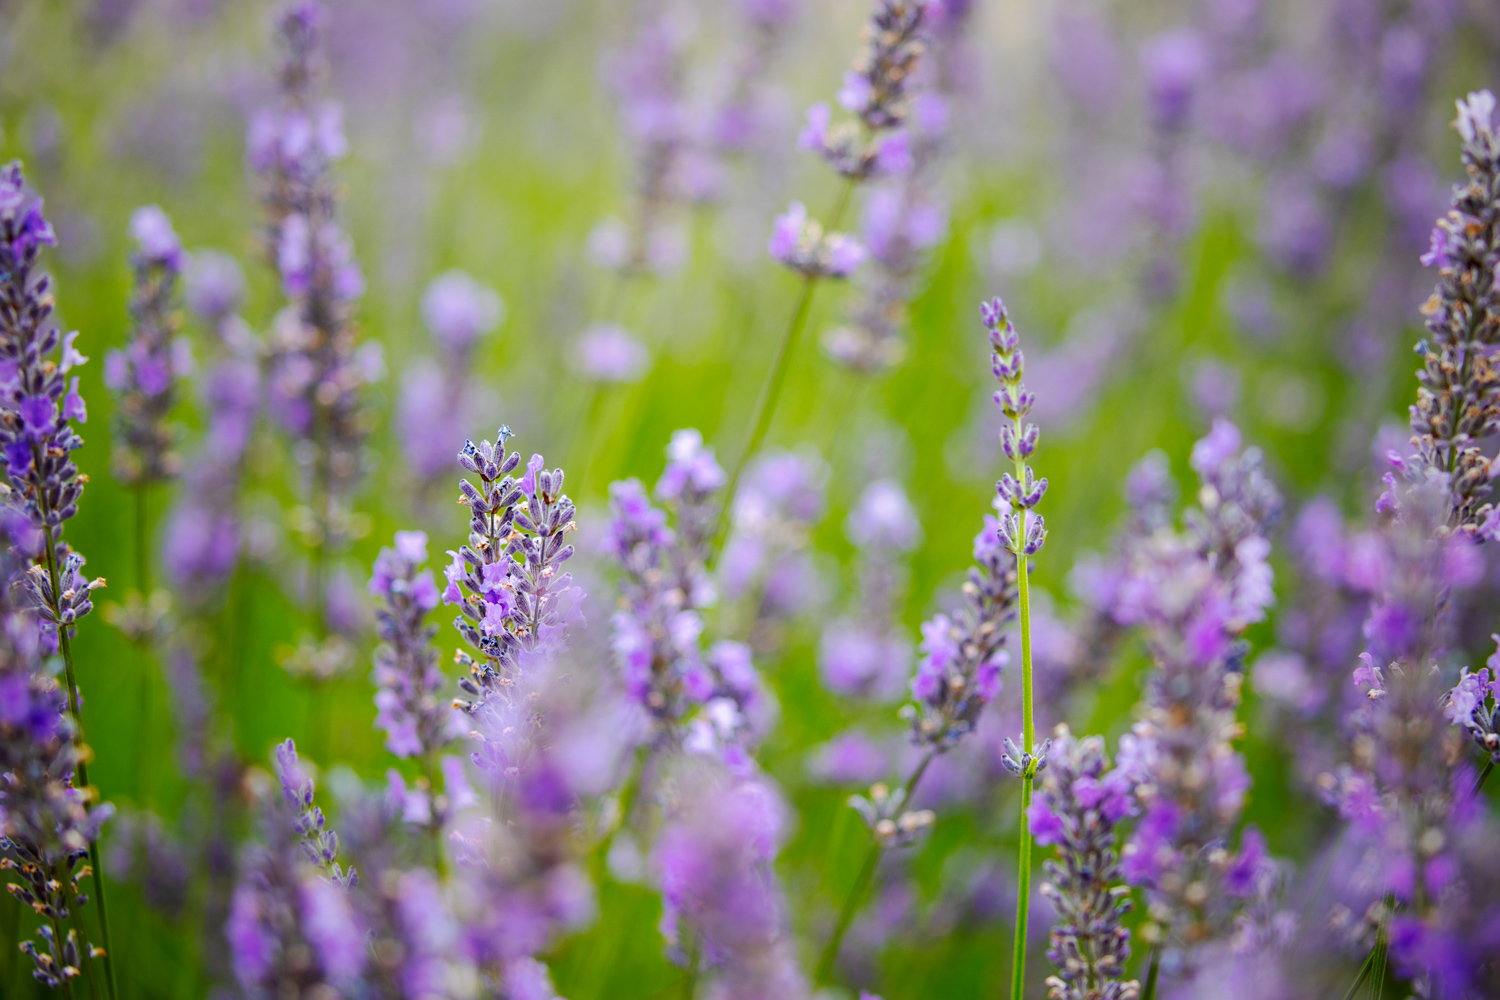 a subtle vignette on a field of lavender how to create a vignette in Photoshop